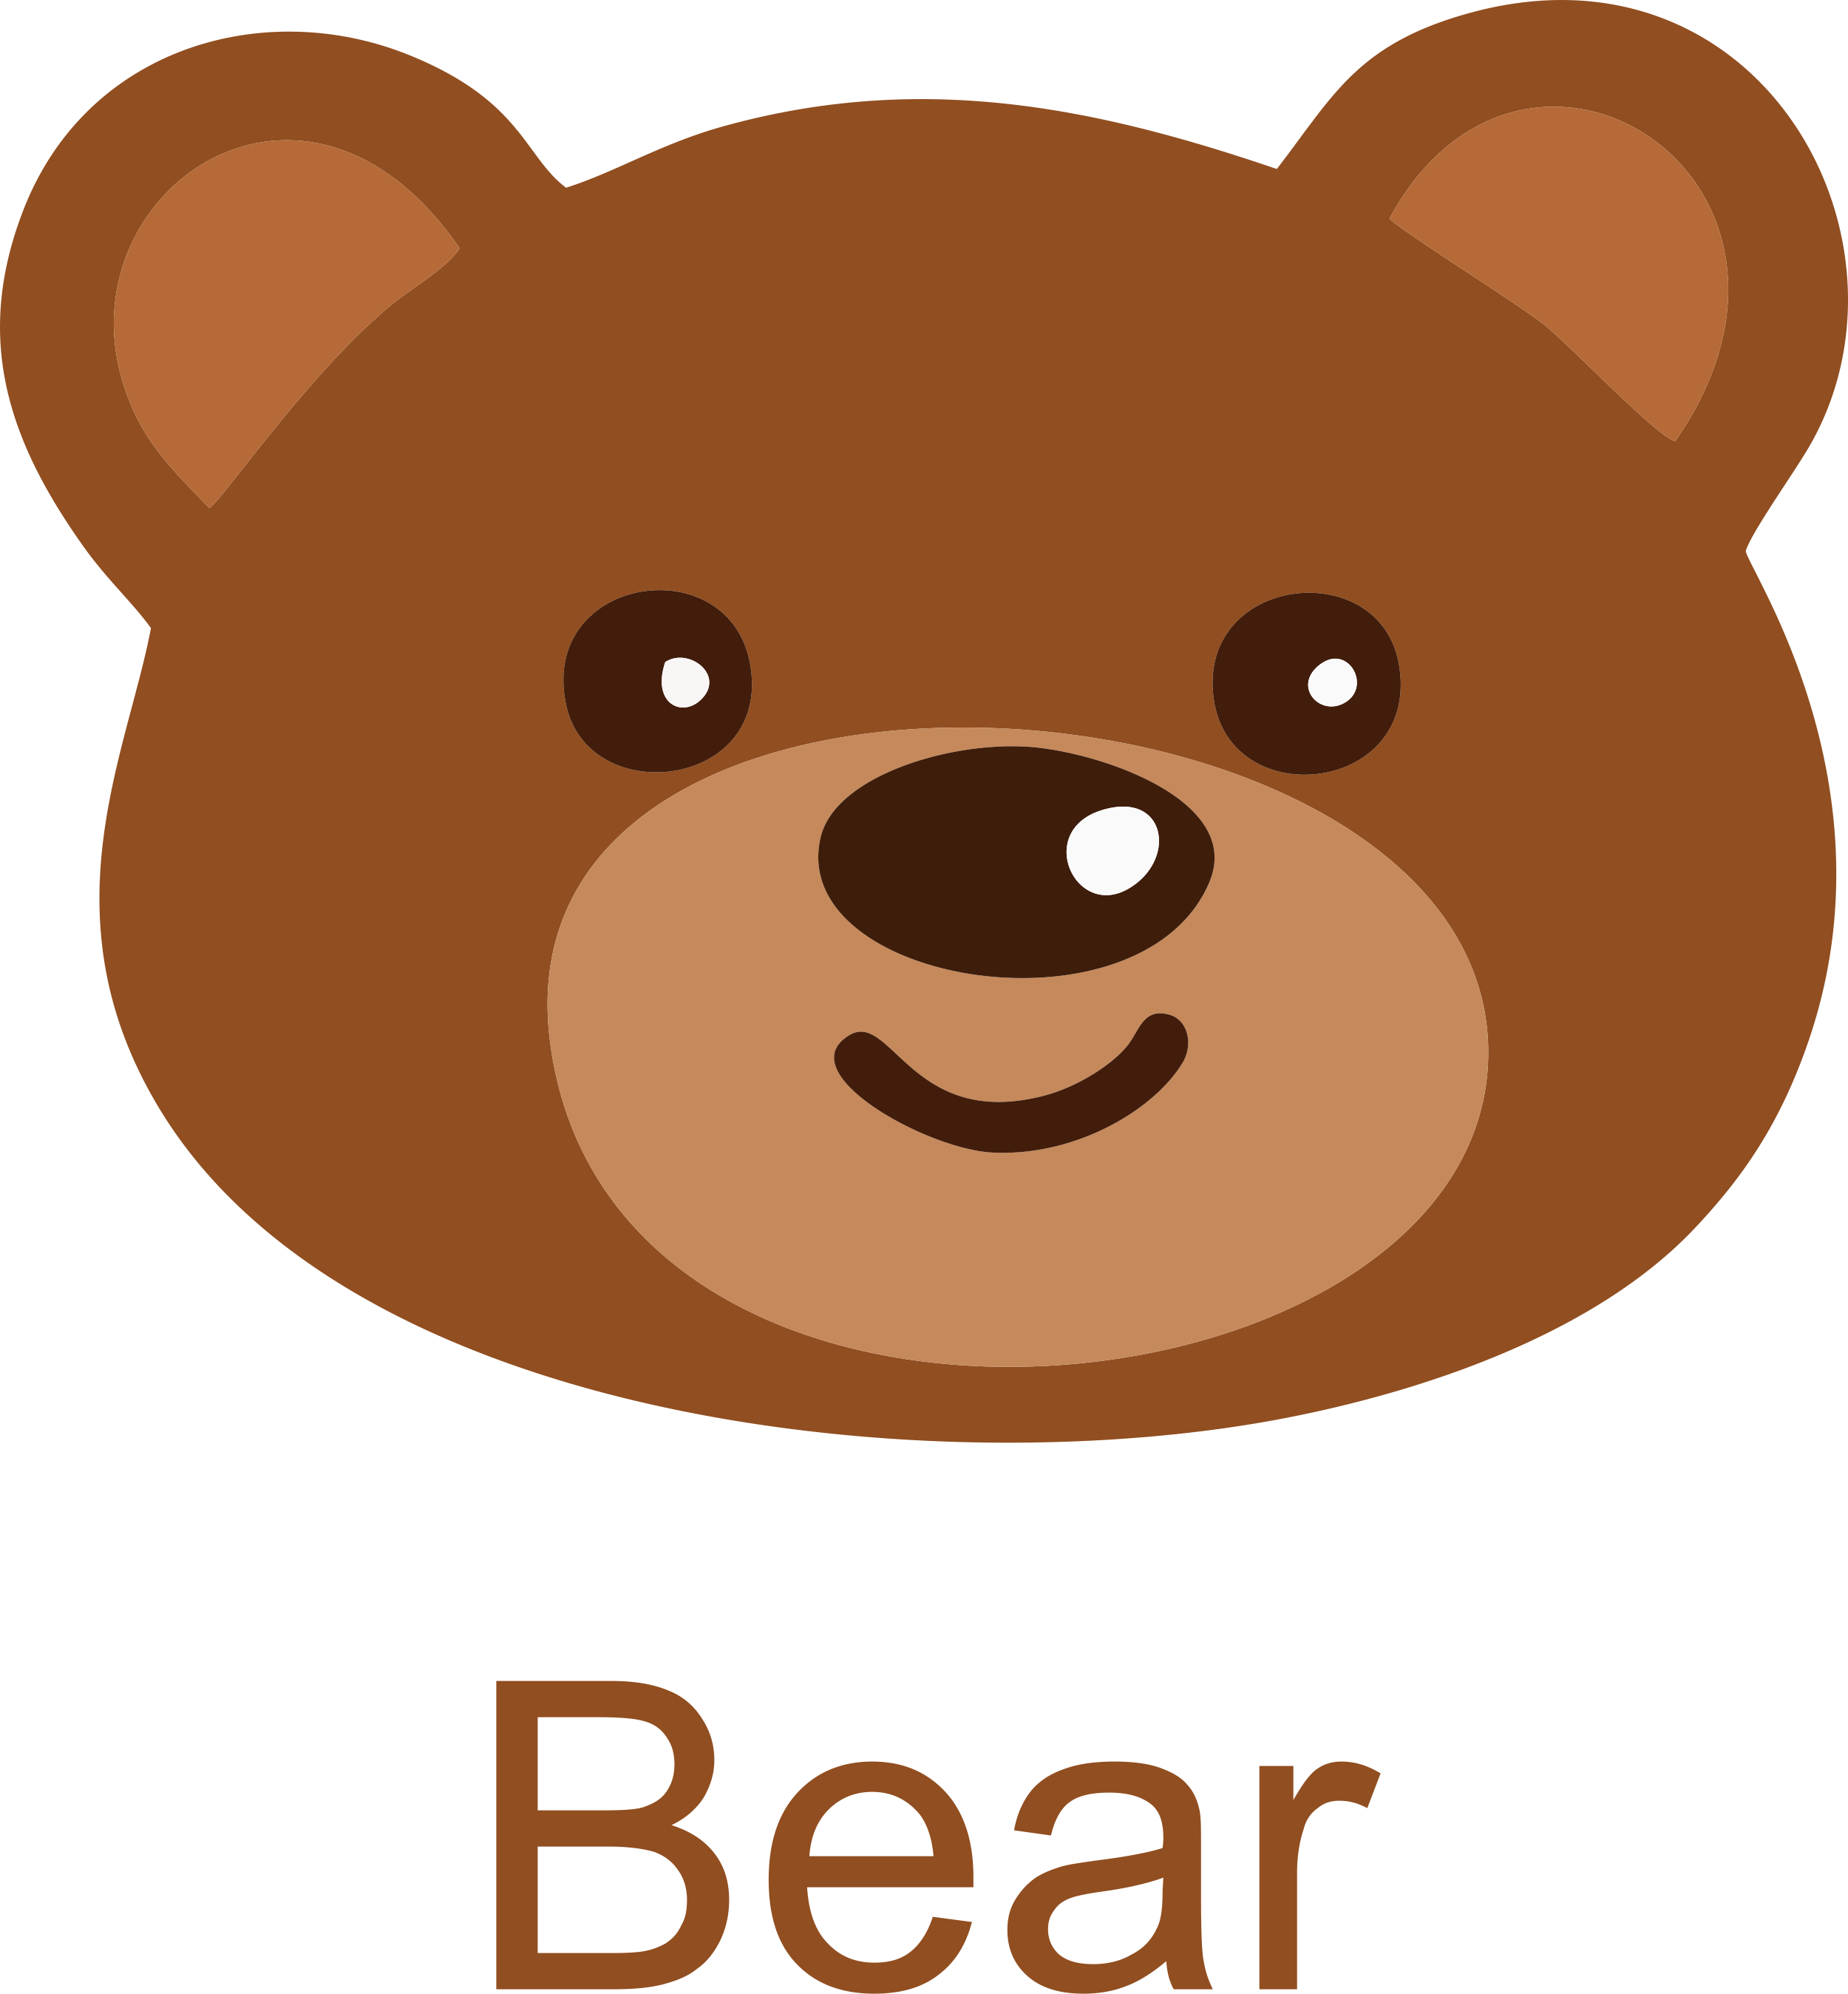 Bear Face Picture Free Download.